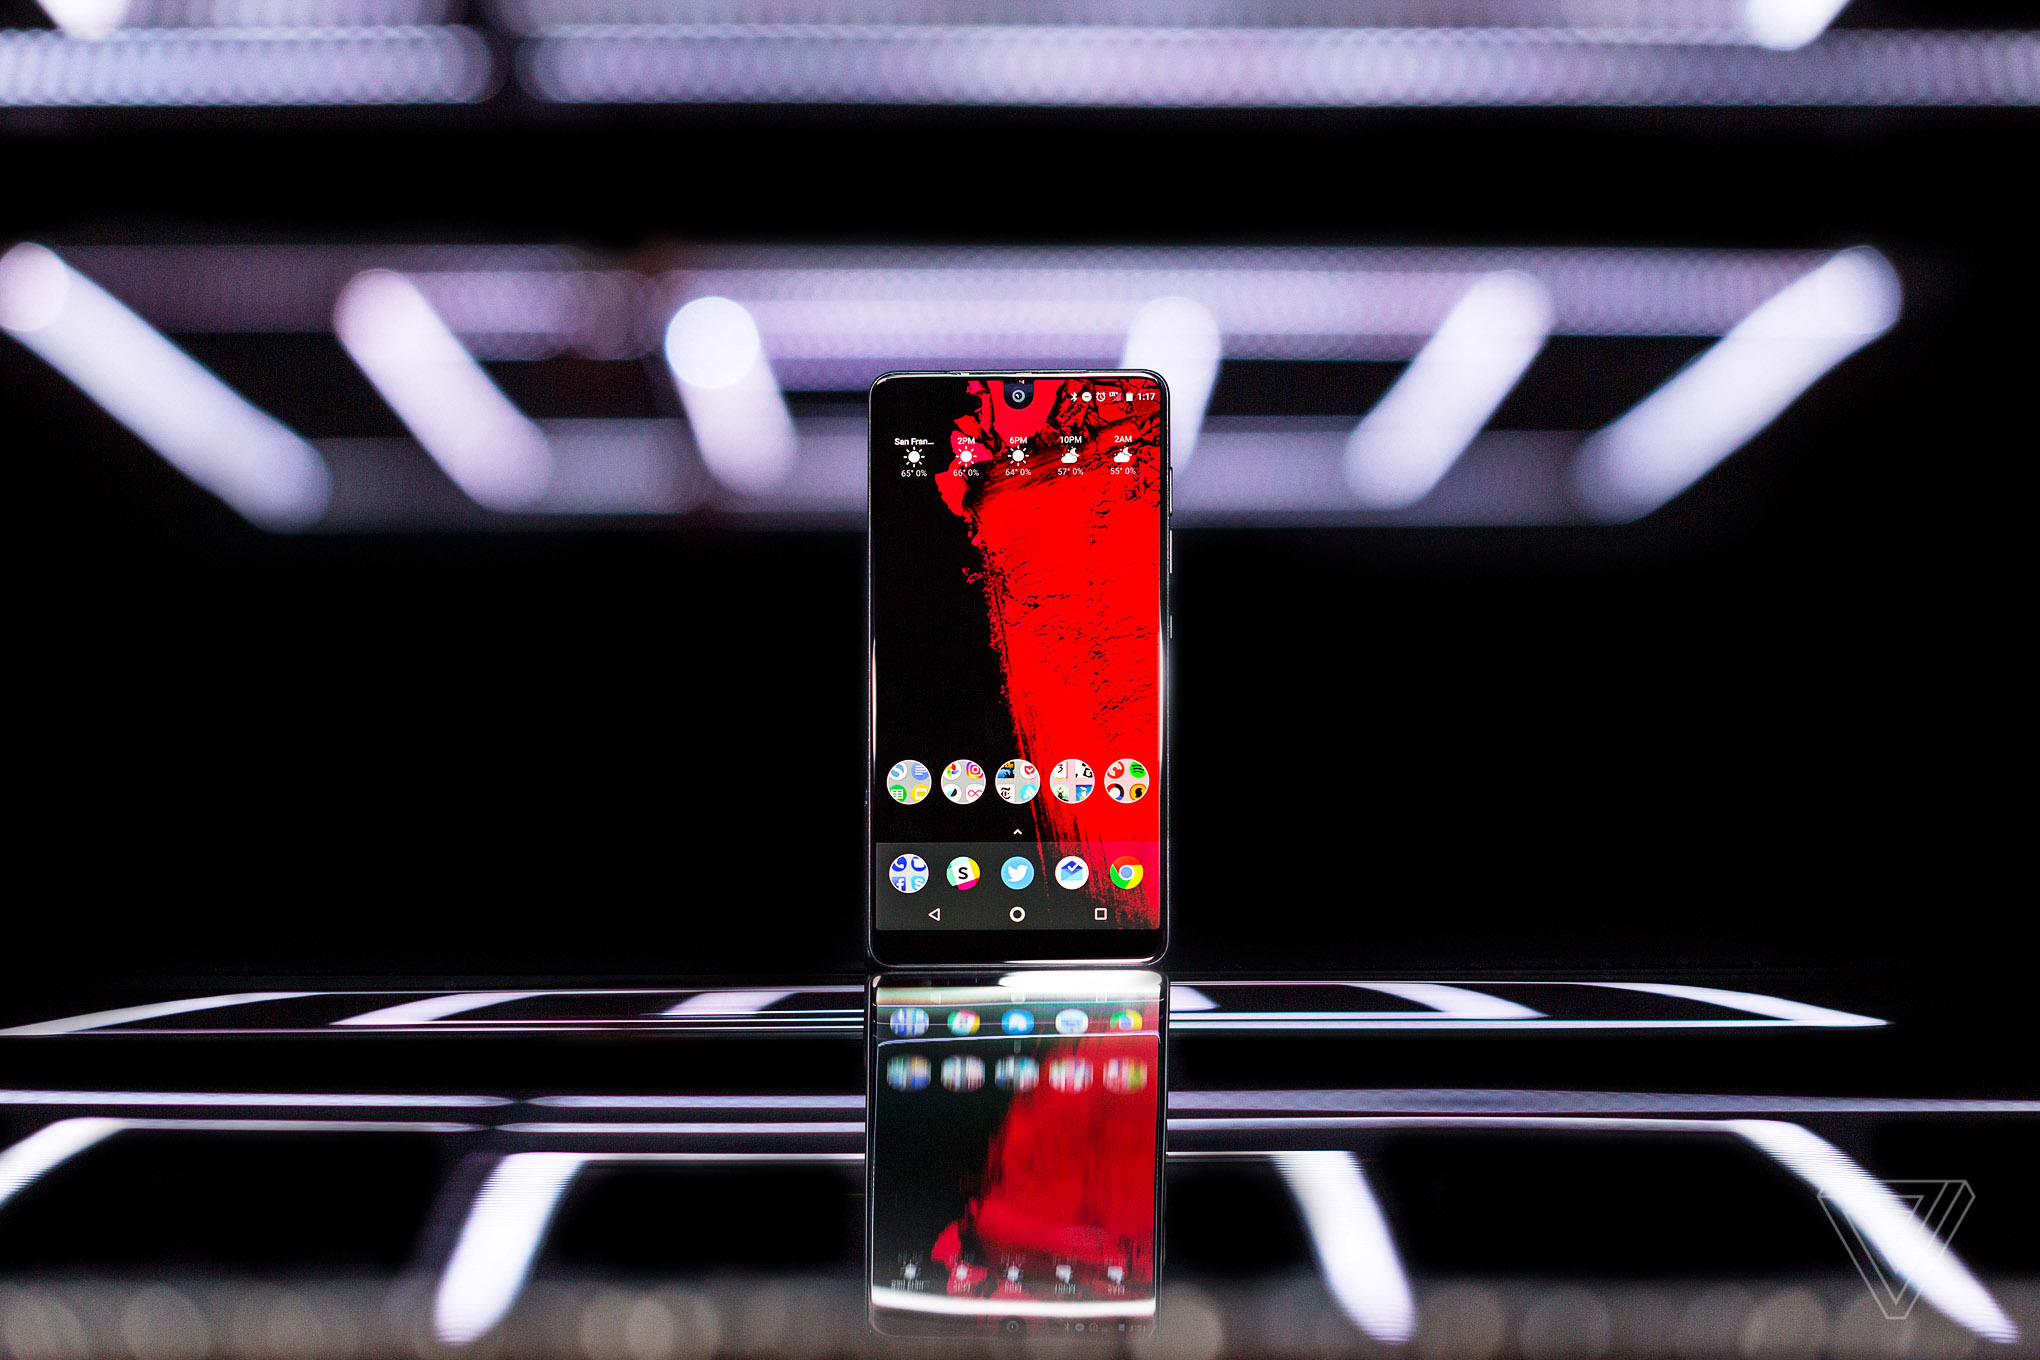 Essential Phone Review: A Beautiful Work In Progress The Father Of  Android's New Phone Is Doing So Much Right: Elegant Design, Big Screen,  Long Battery Life